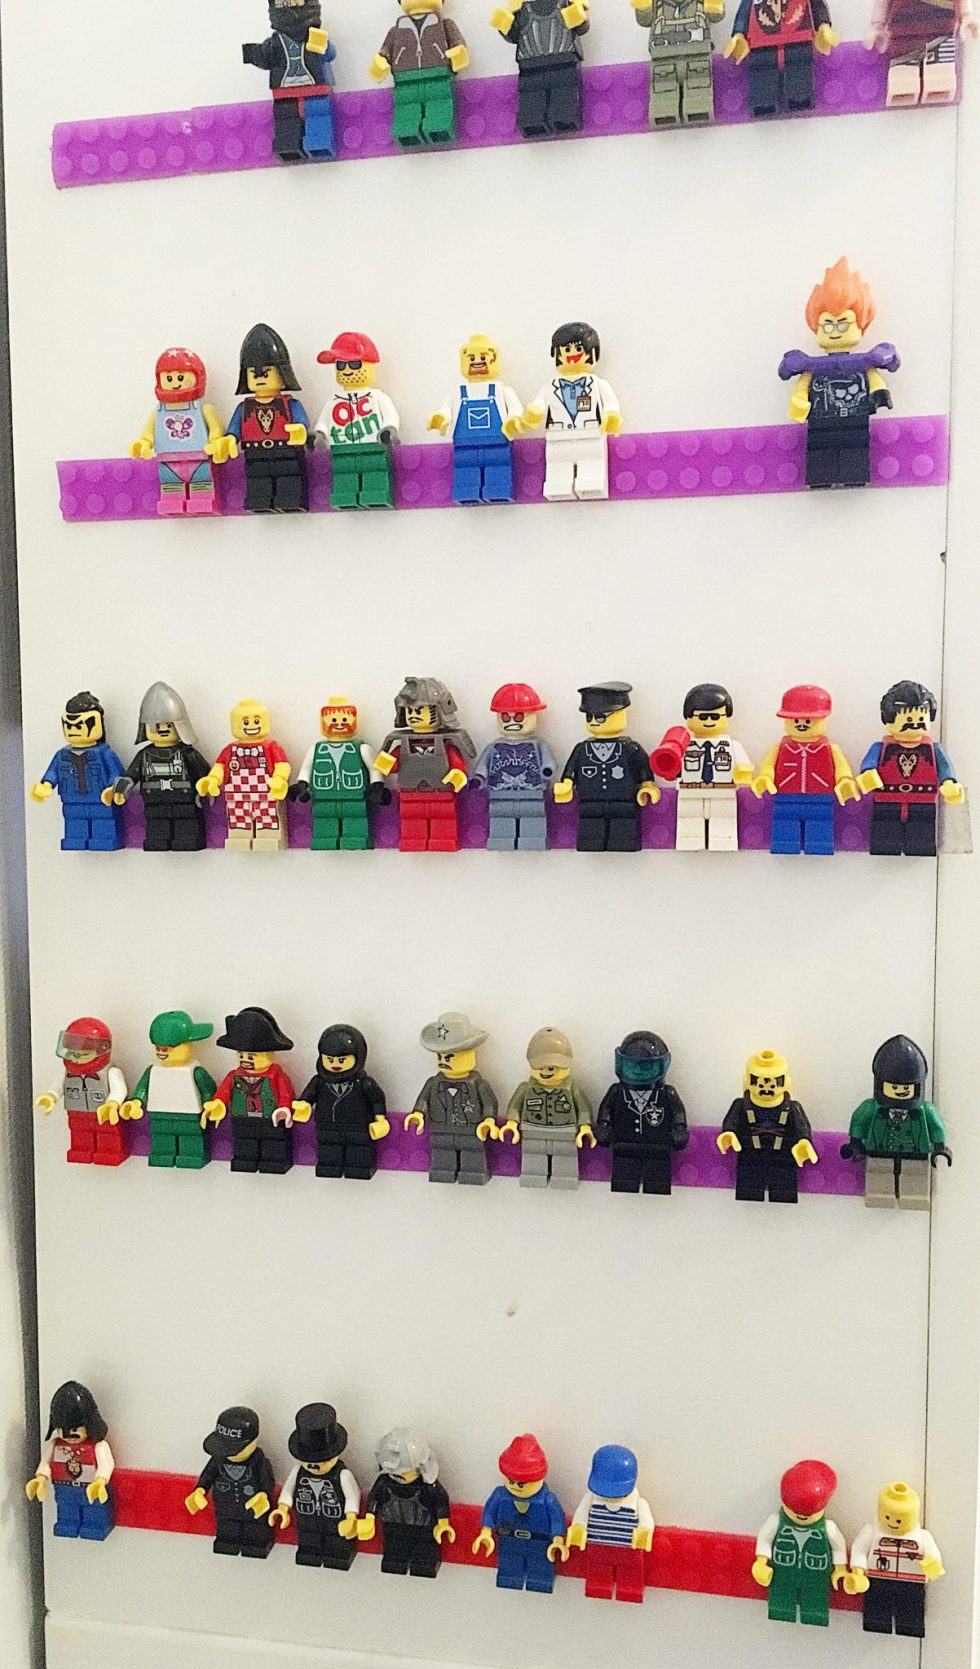 LEGO minifigs on display using LEGO tape